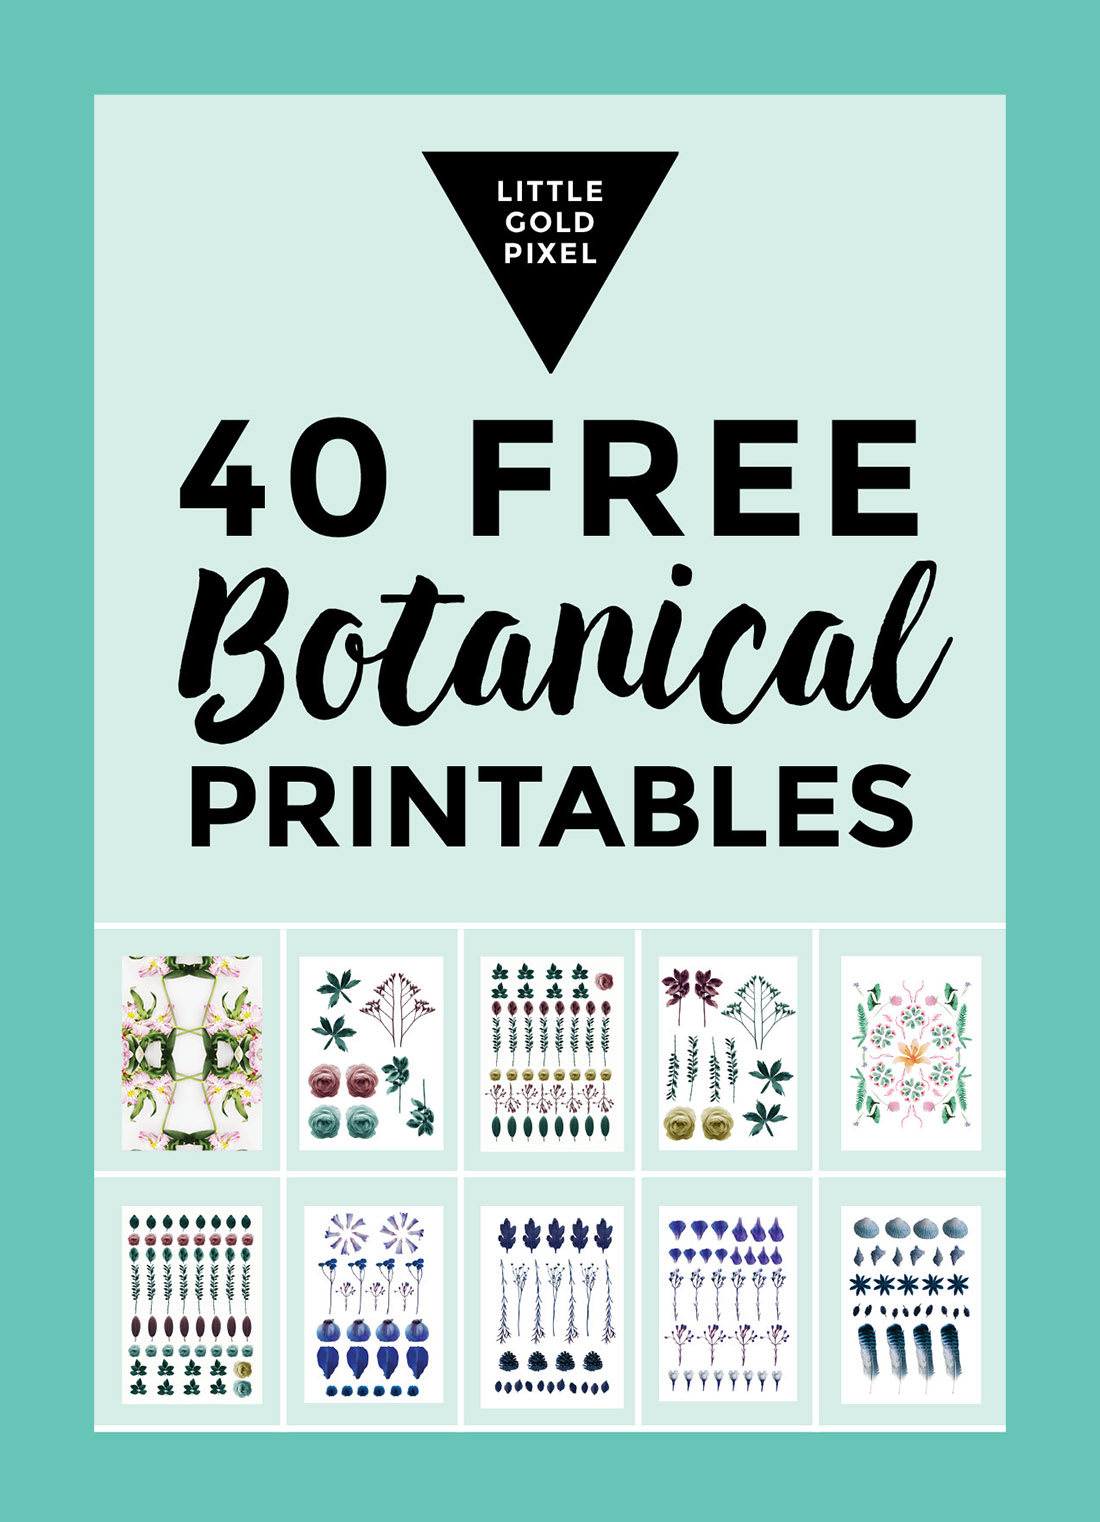 40 Free Botanical Printables • Little Gold Pixel